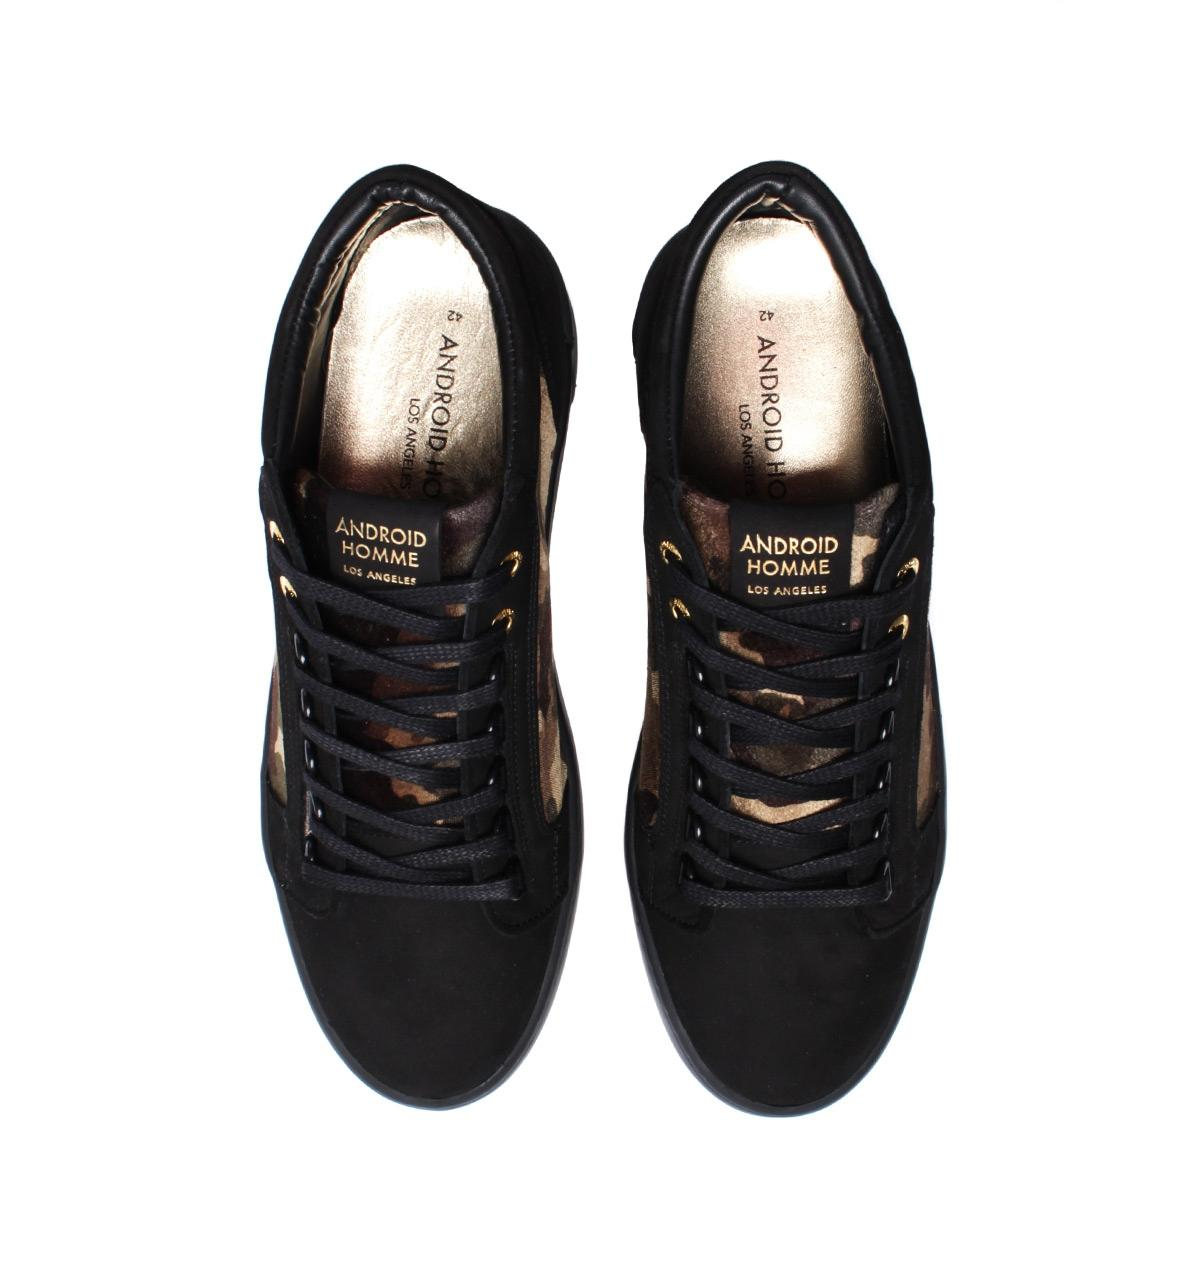 5c31e37e6137 Lyst - Android Homme Propulsion Mid Camo Black Suede Trainers in ...